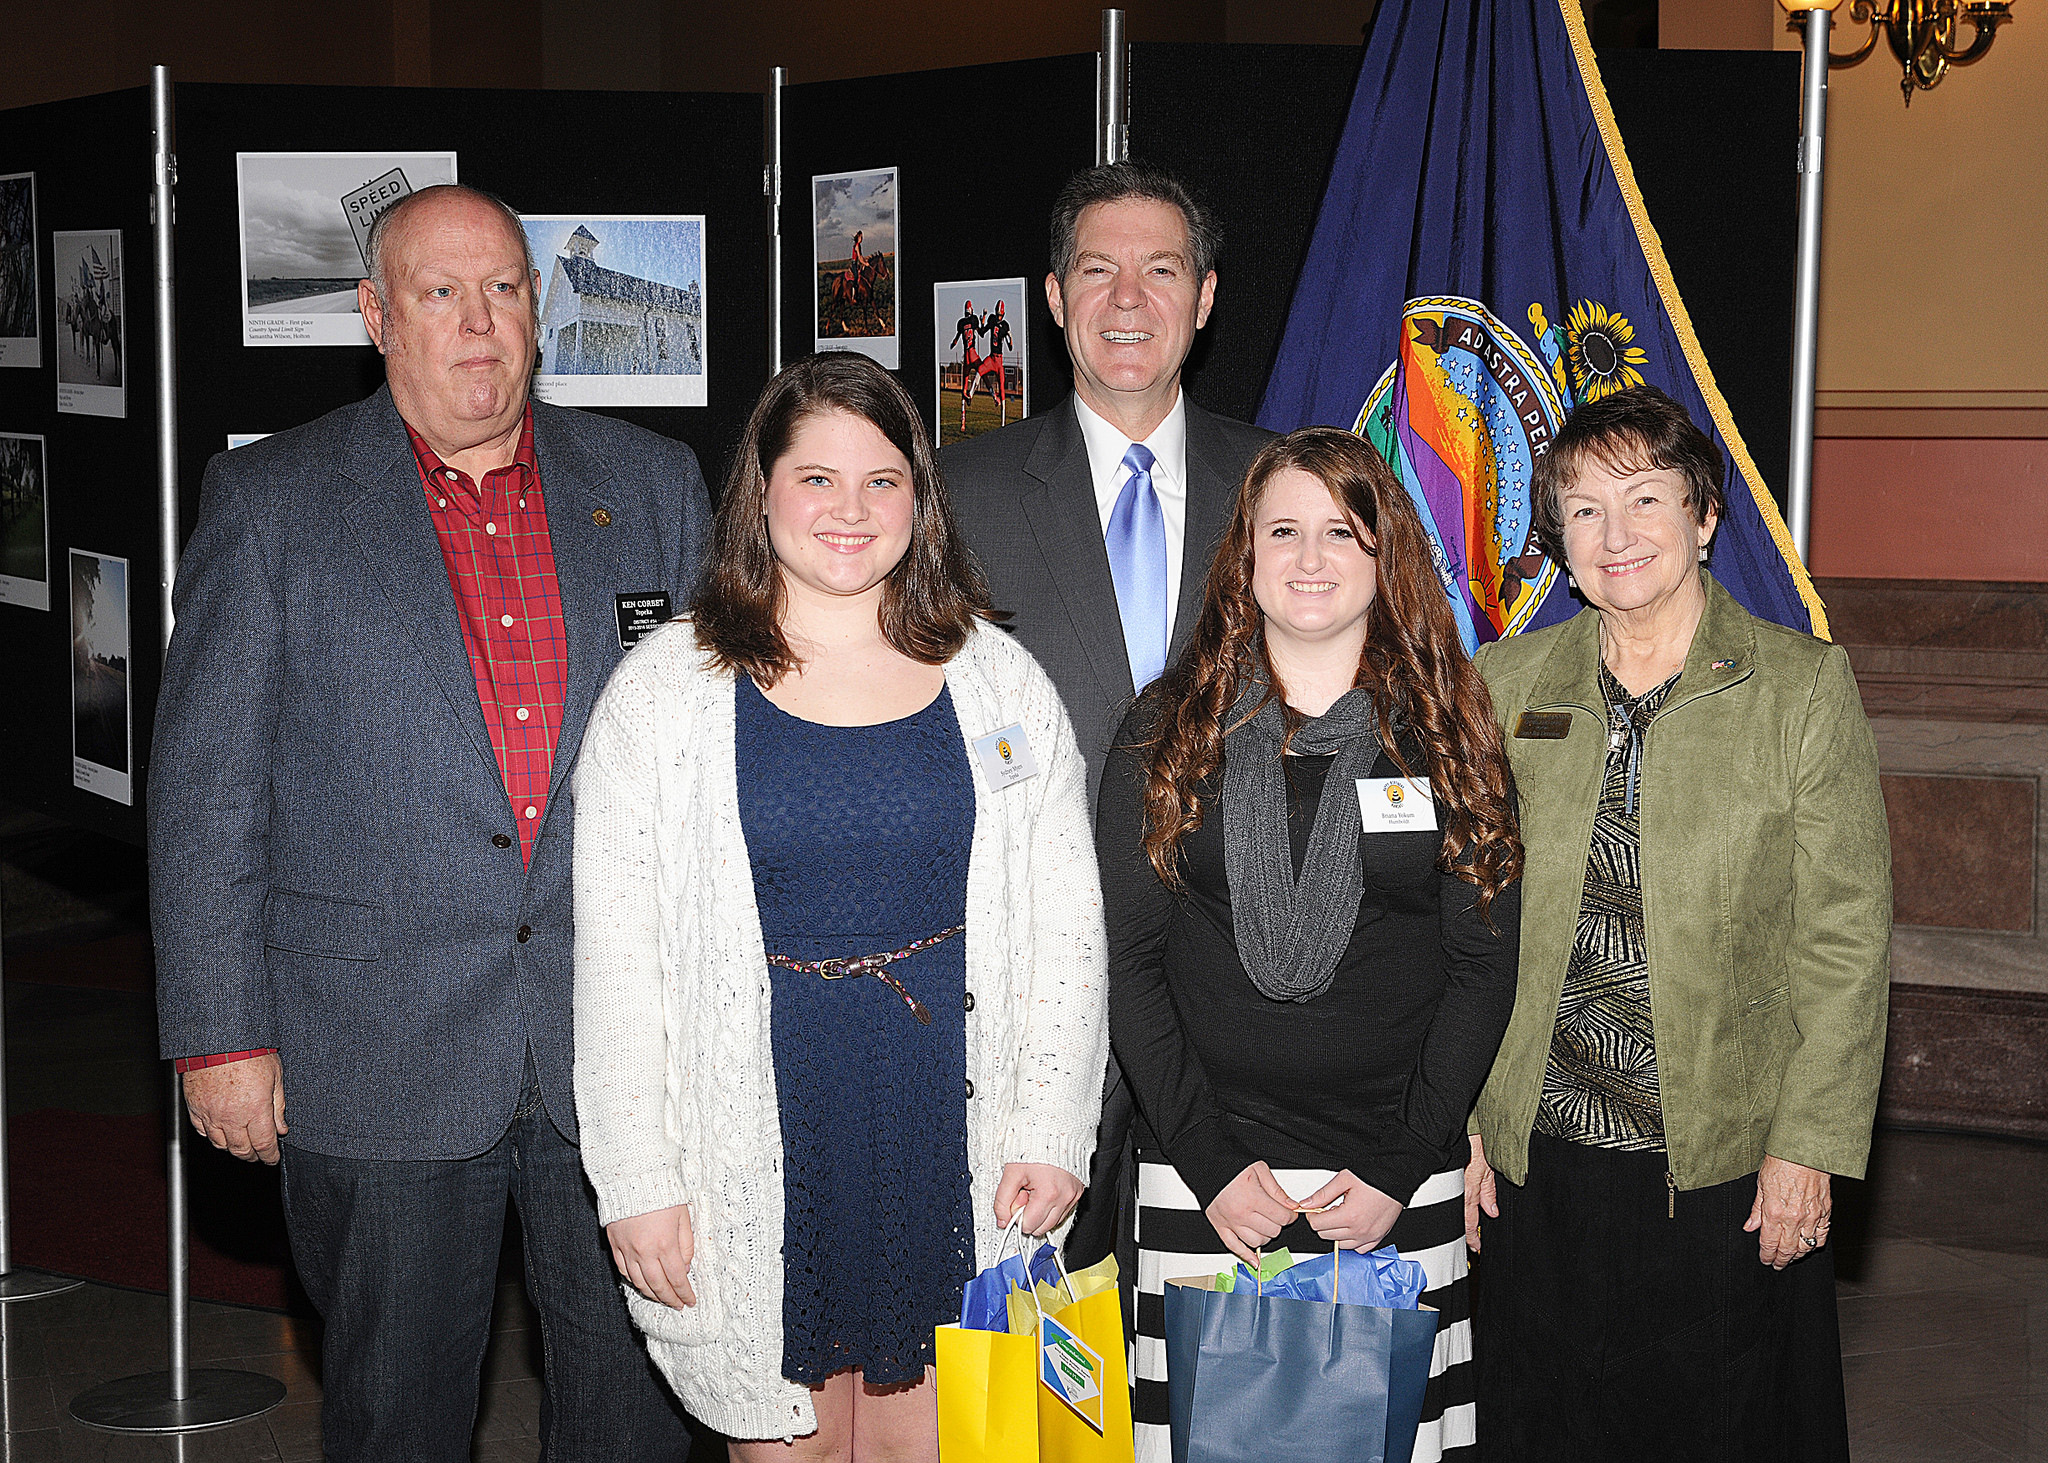 12th grade winners Sydney Myers, Briana Yokum, with Representative Ken Corbet, Governor Sam Brownback, and Marearl Denning